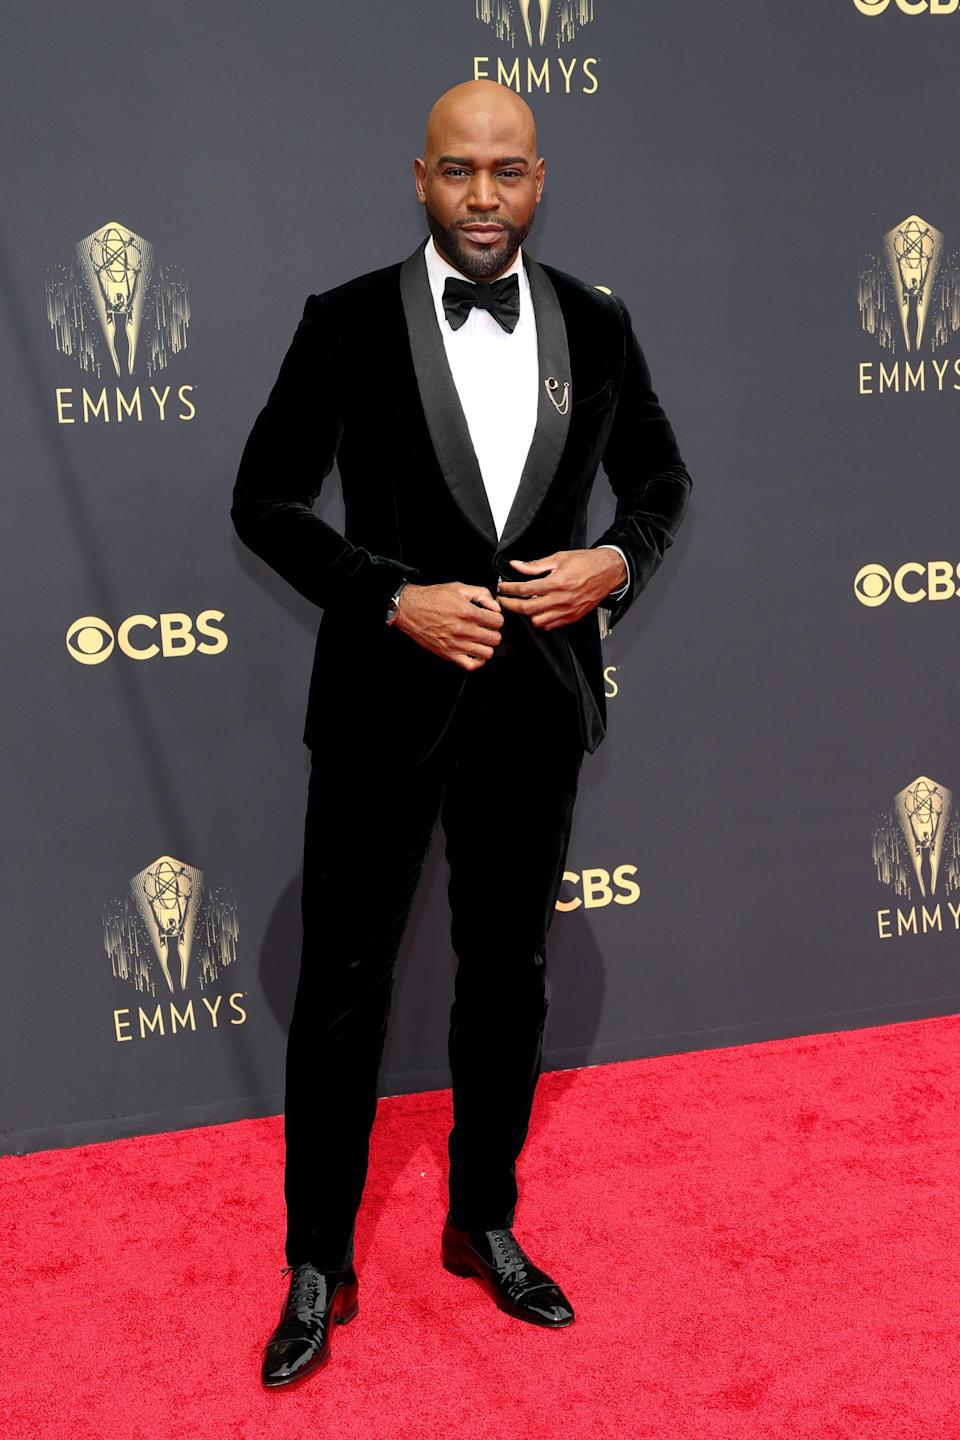 Karamo Brown wears a velvet suit at the 2021 Emmys.